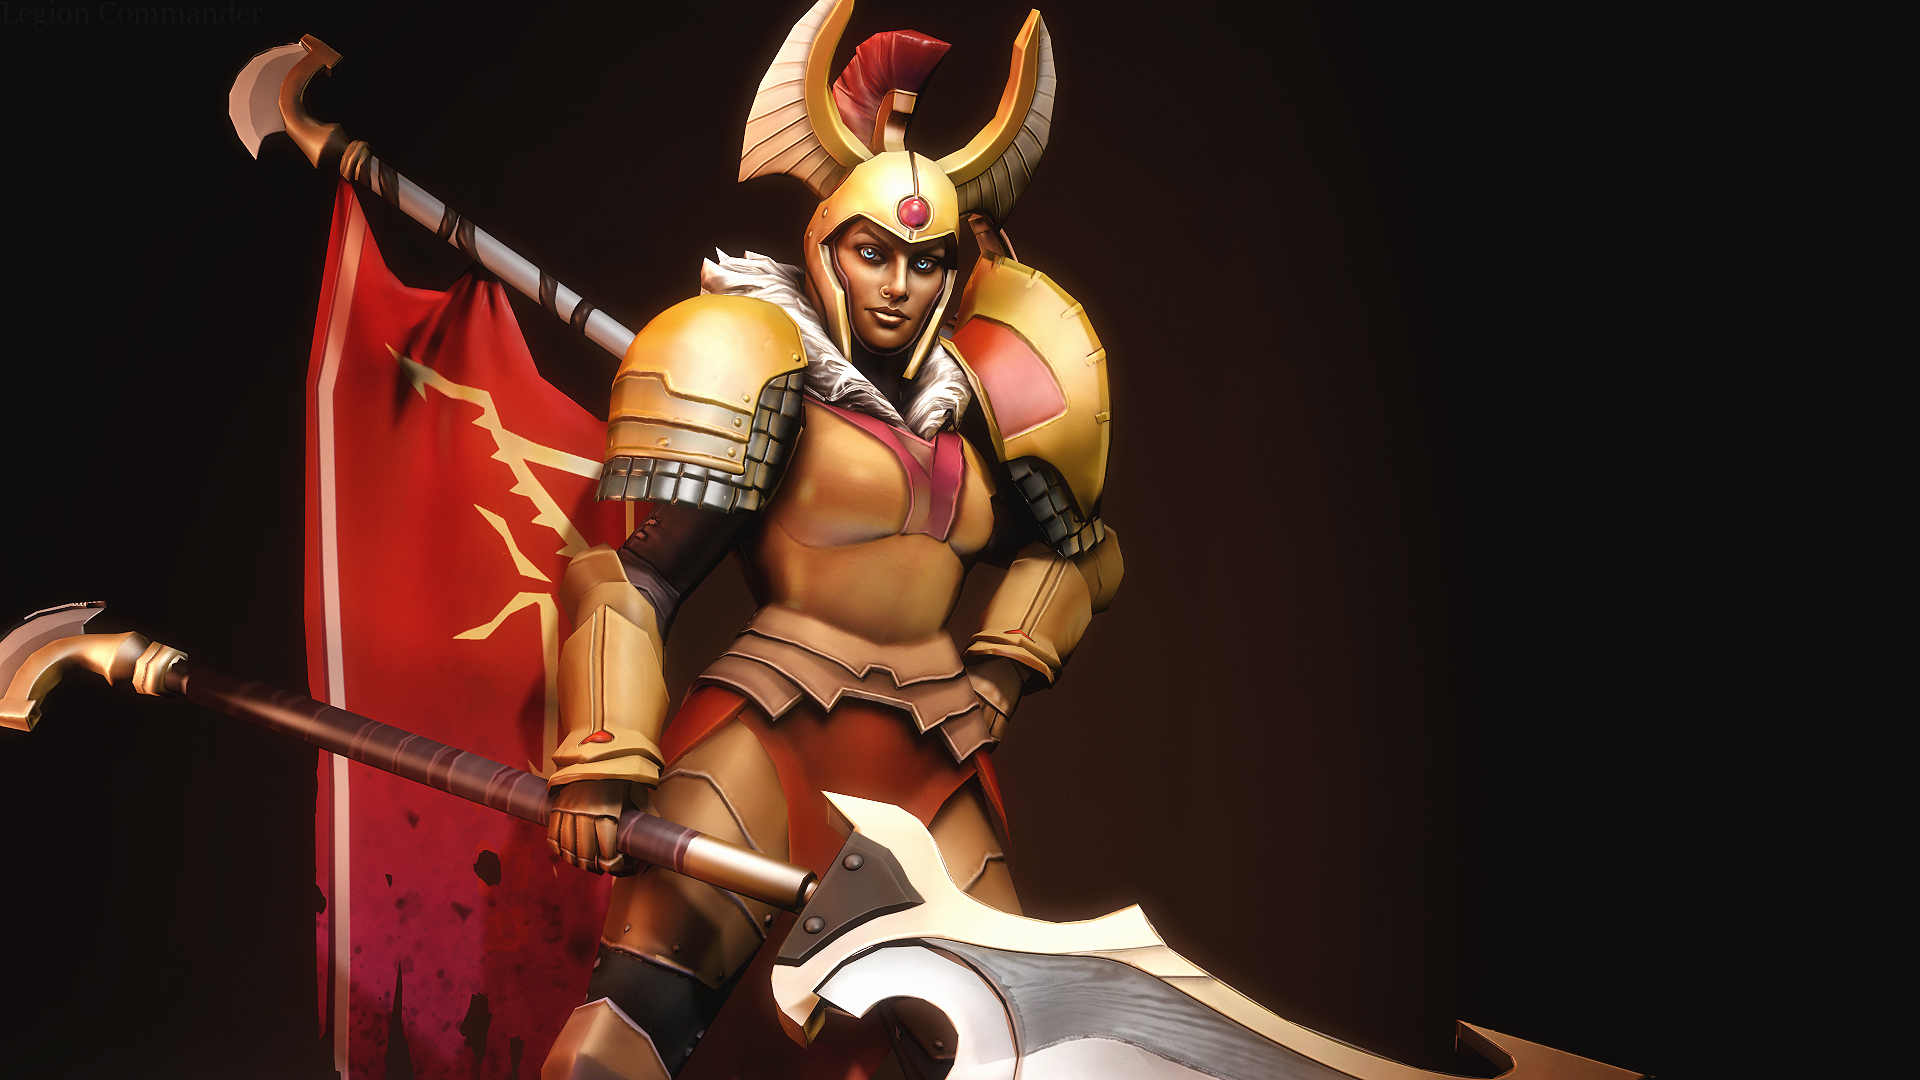 Dota 2 Legion Commander 36 Wallpaper HD